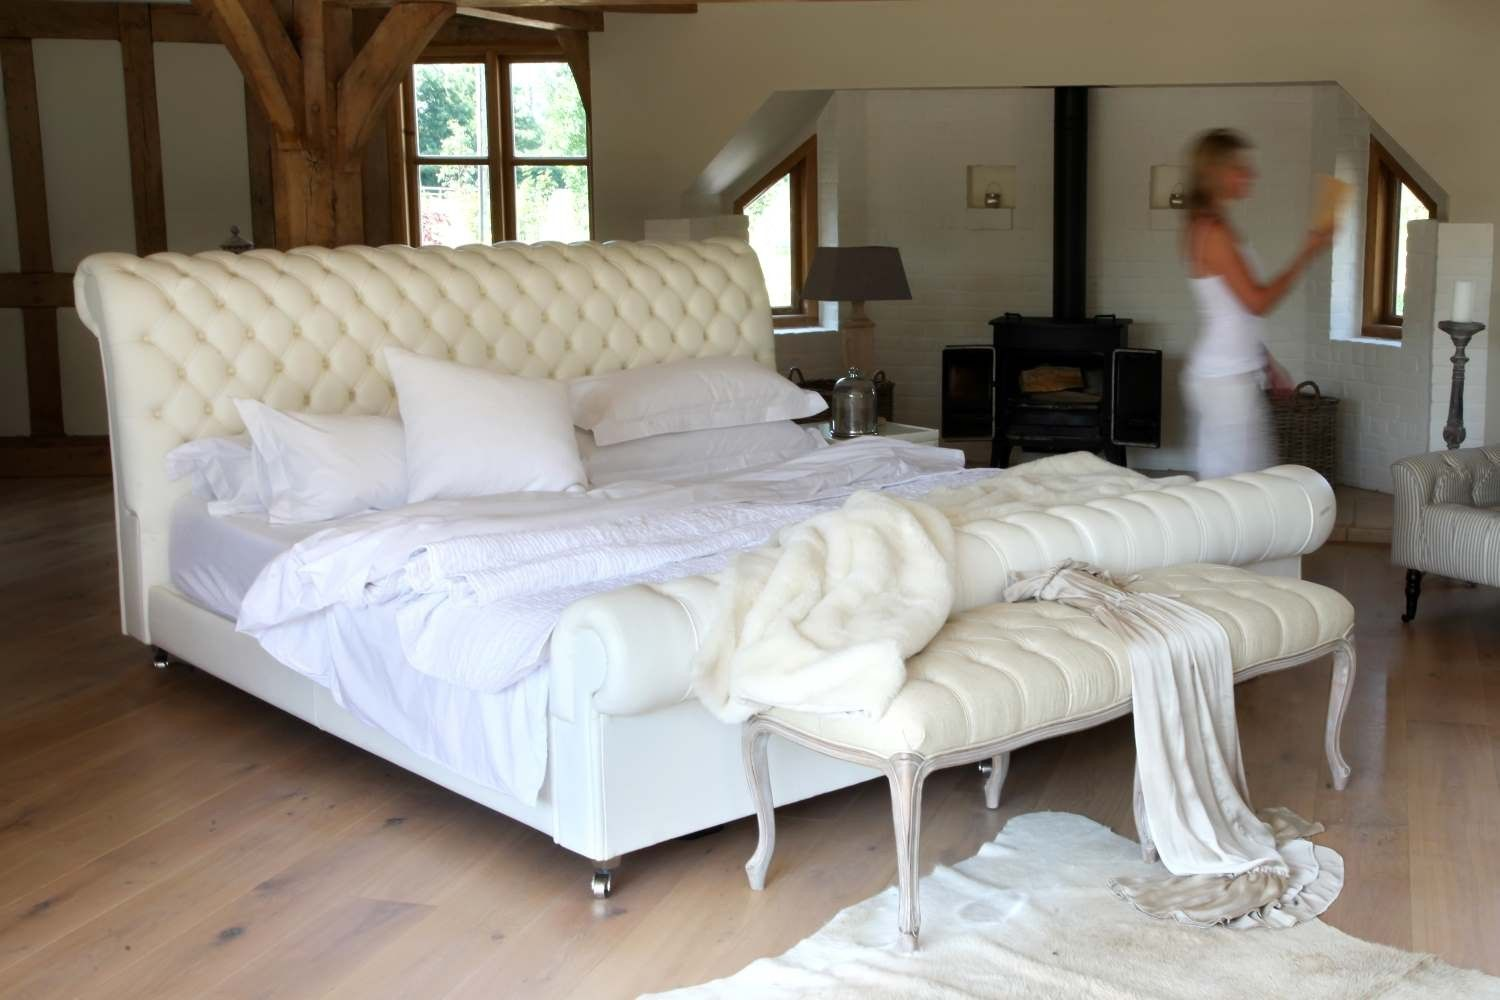 Big Bed Company Extra Long Beds From The Big Bed Company Bedroom Bed Company